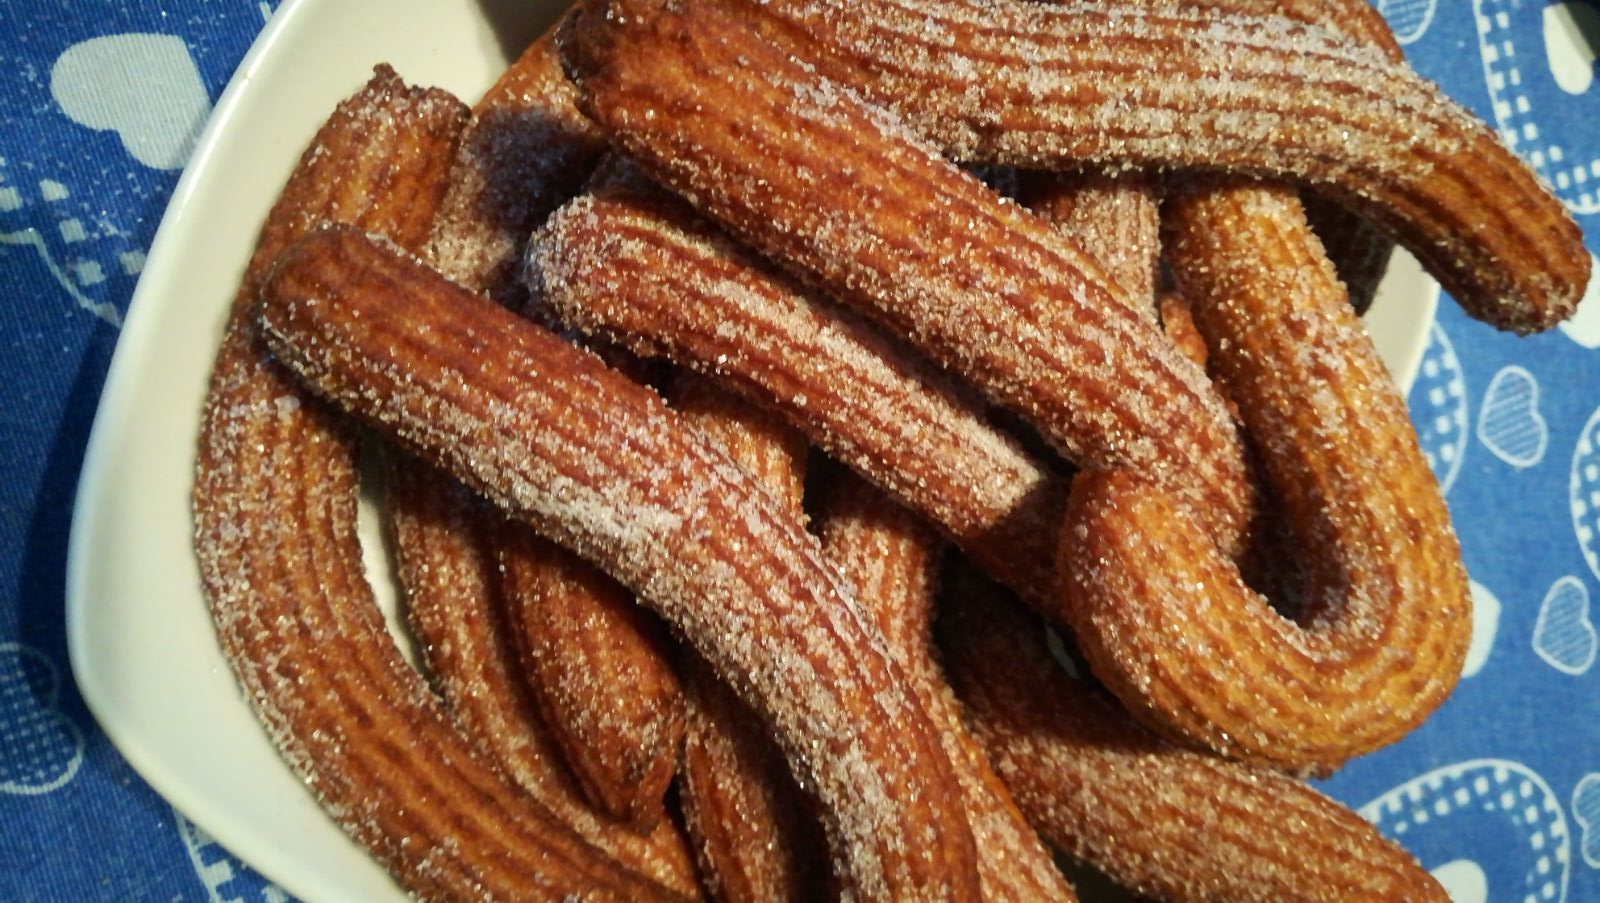 churros siciliano by chef Pezzuol